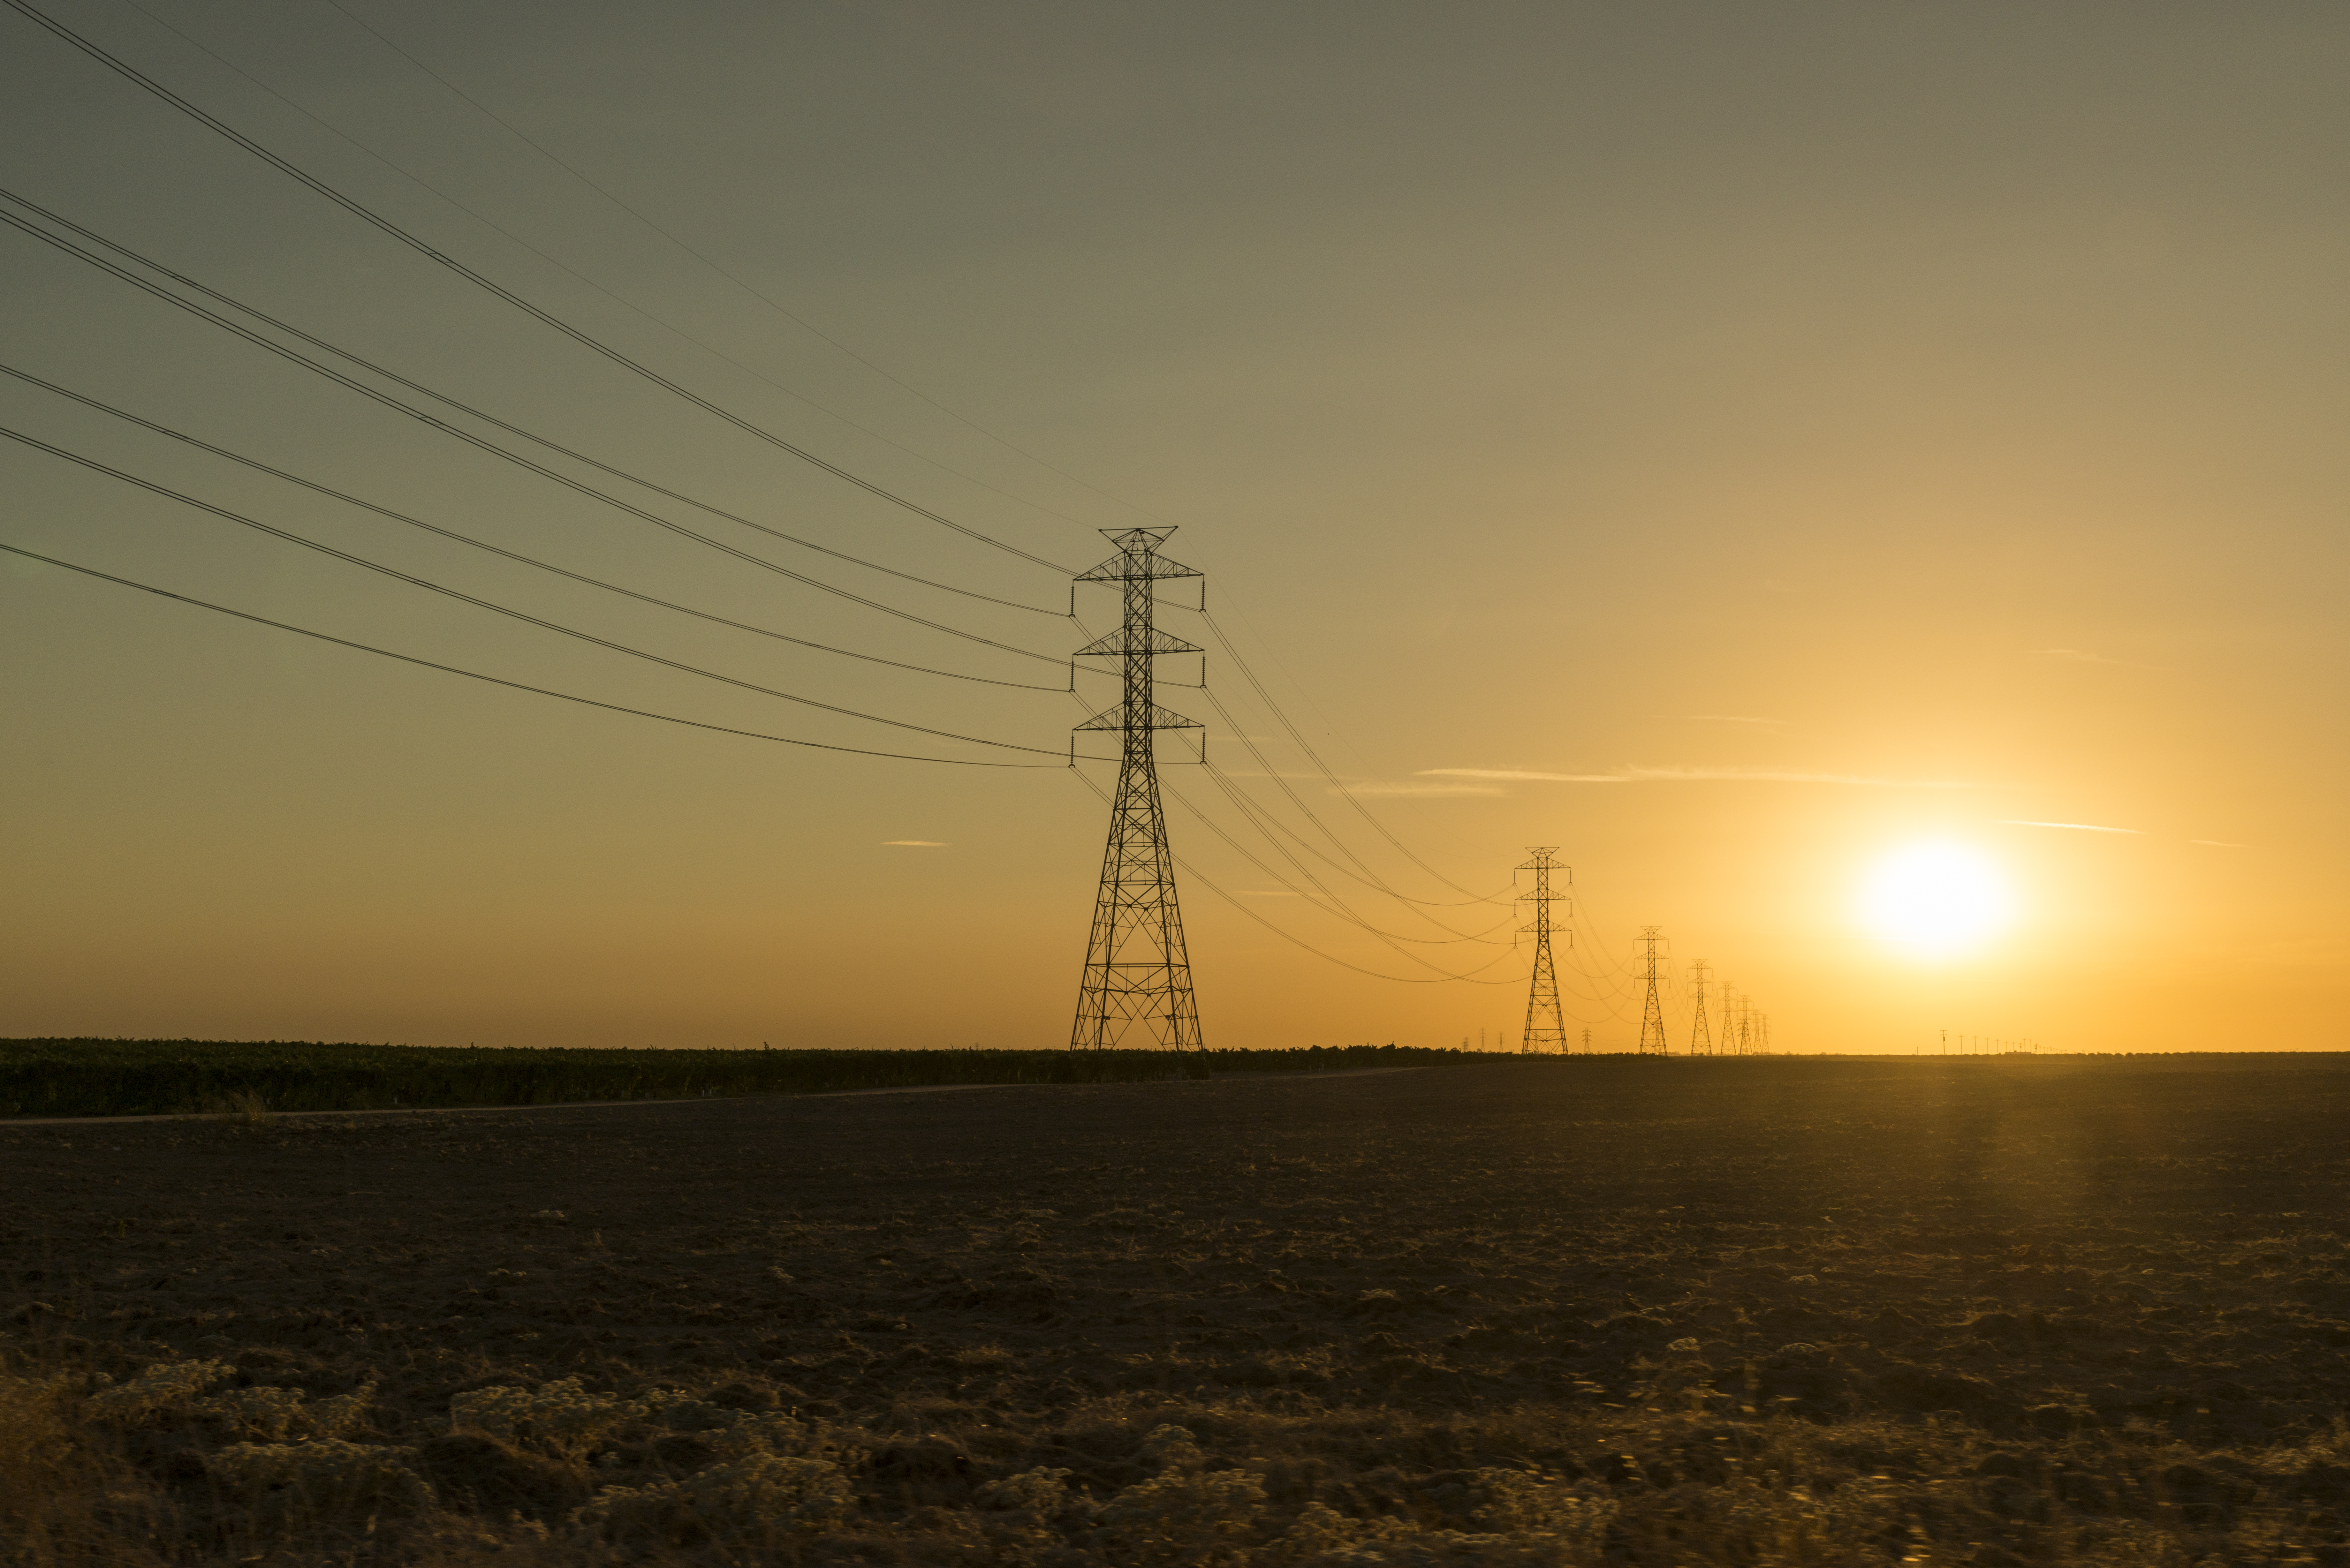 Electrical power transmission lines and pylons on sunset